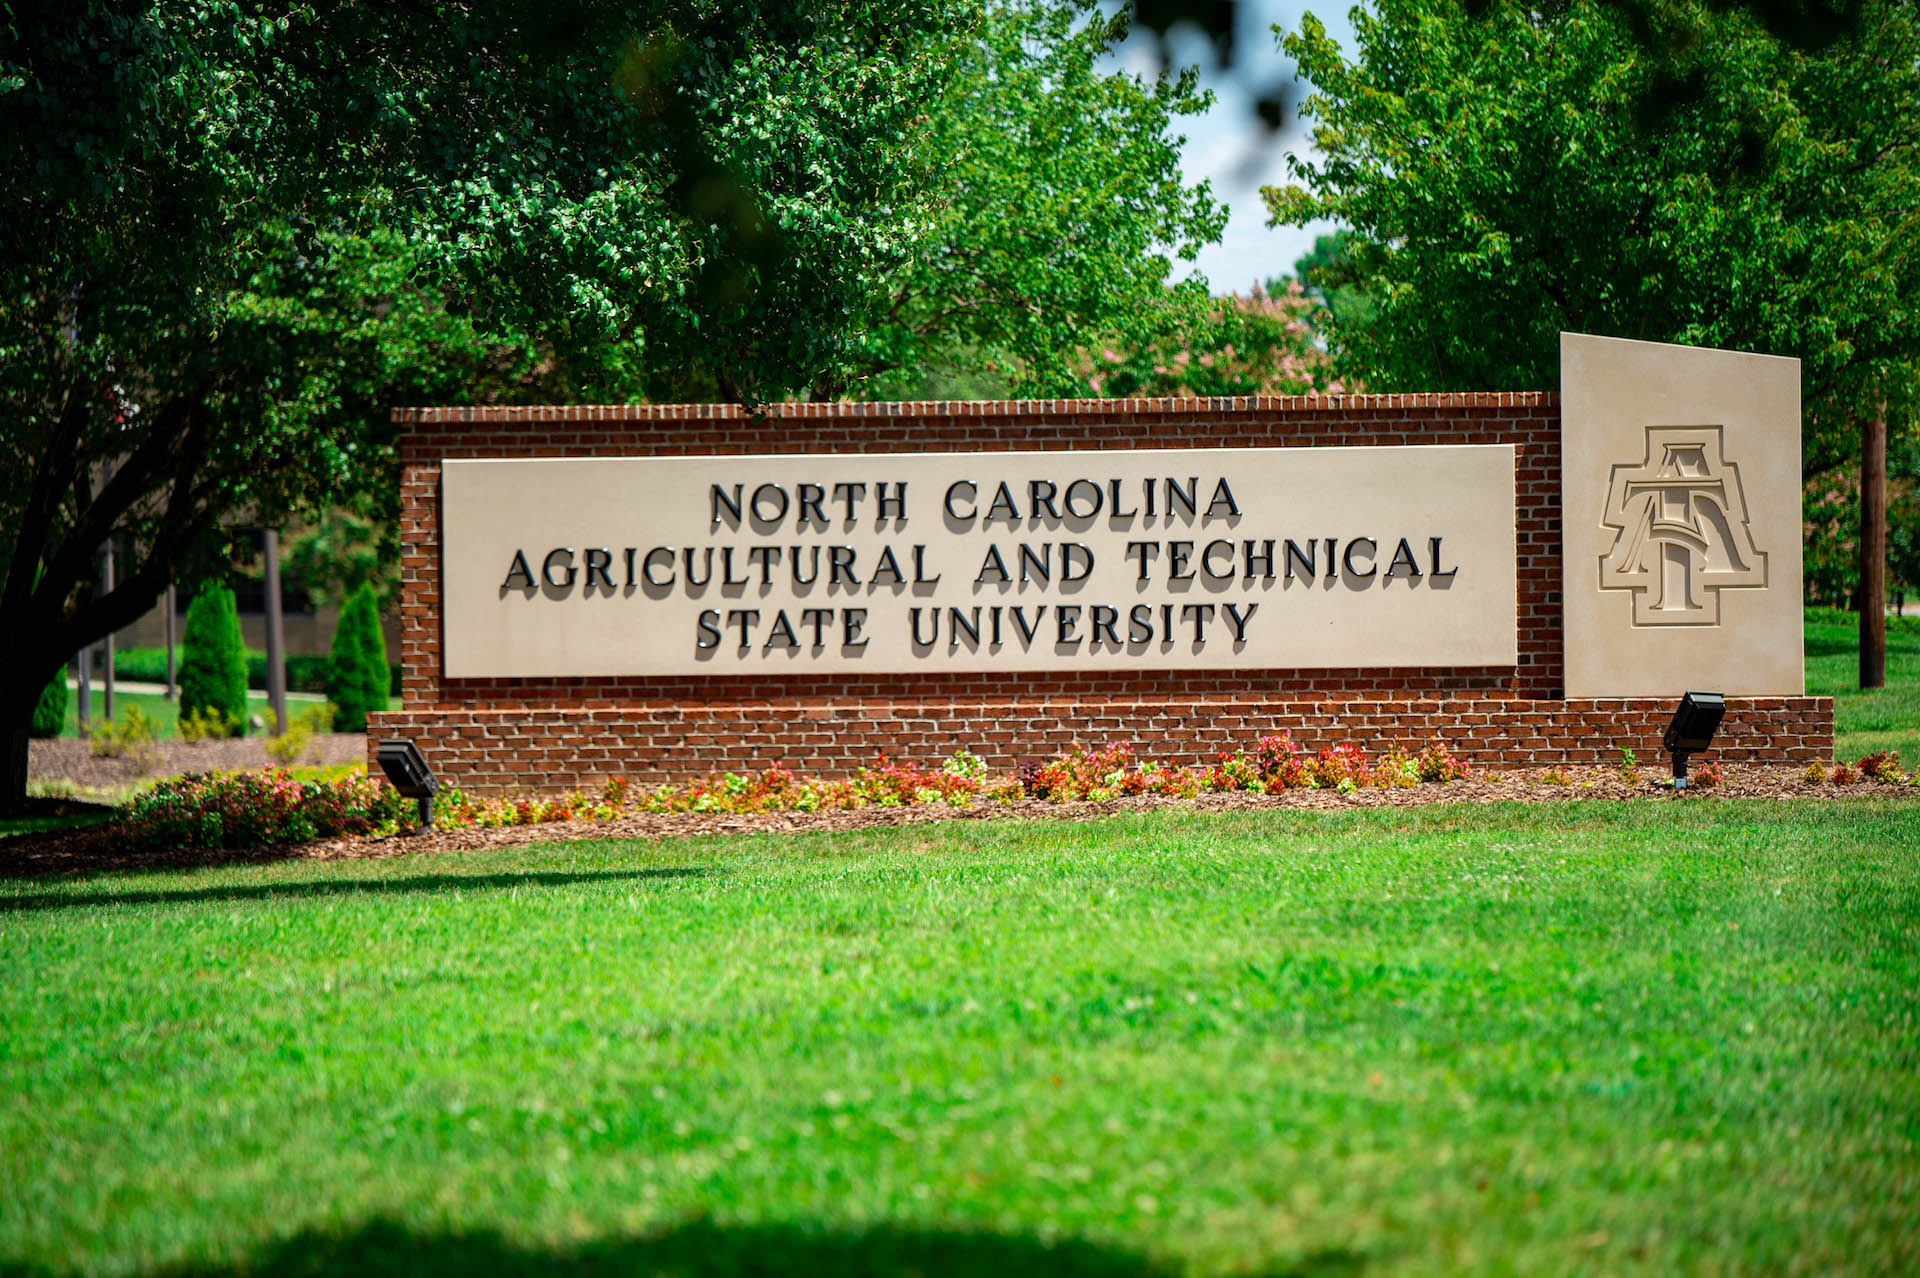 N.C. A&T Sign